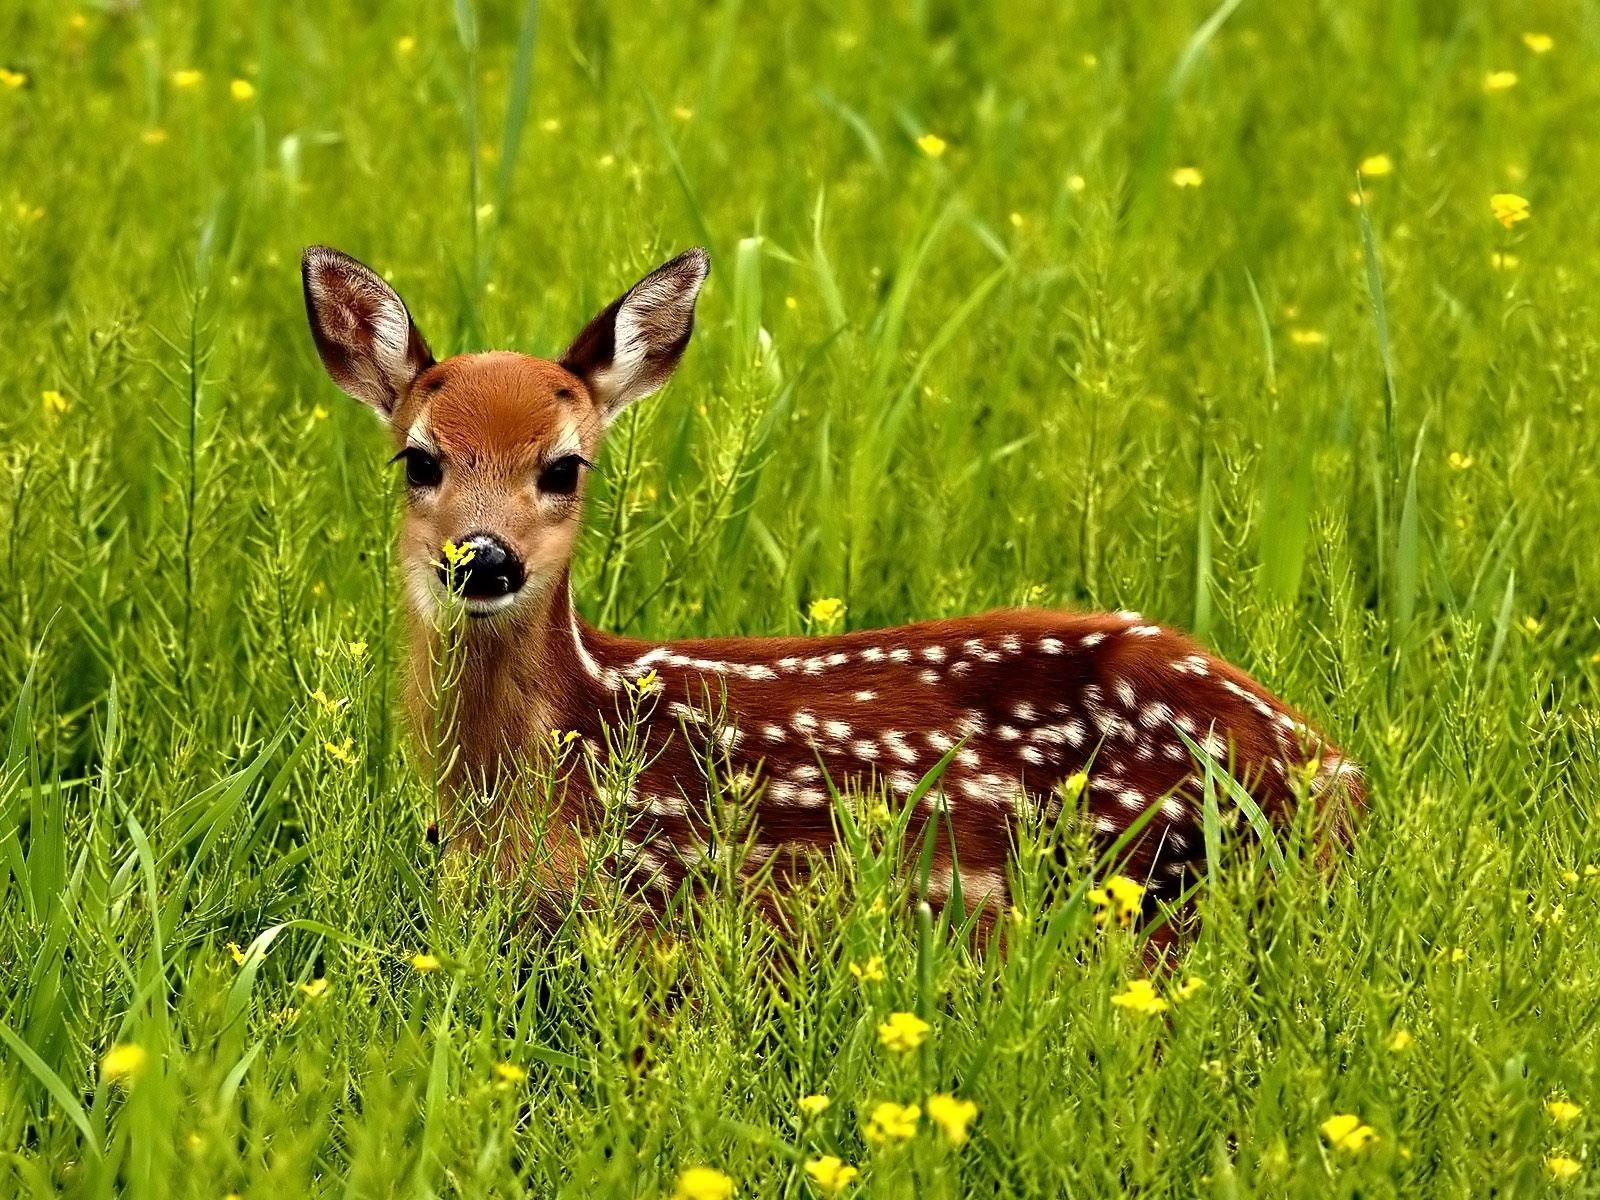 125285 download wallpaper Animals, Fawn, Grass, Spotted, Spotty, Lurk, Hide screensavers and pictures for free